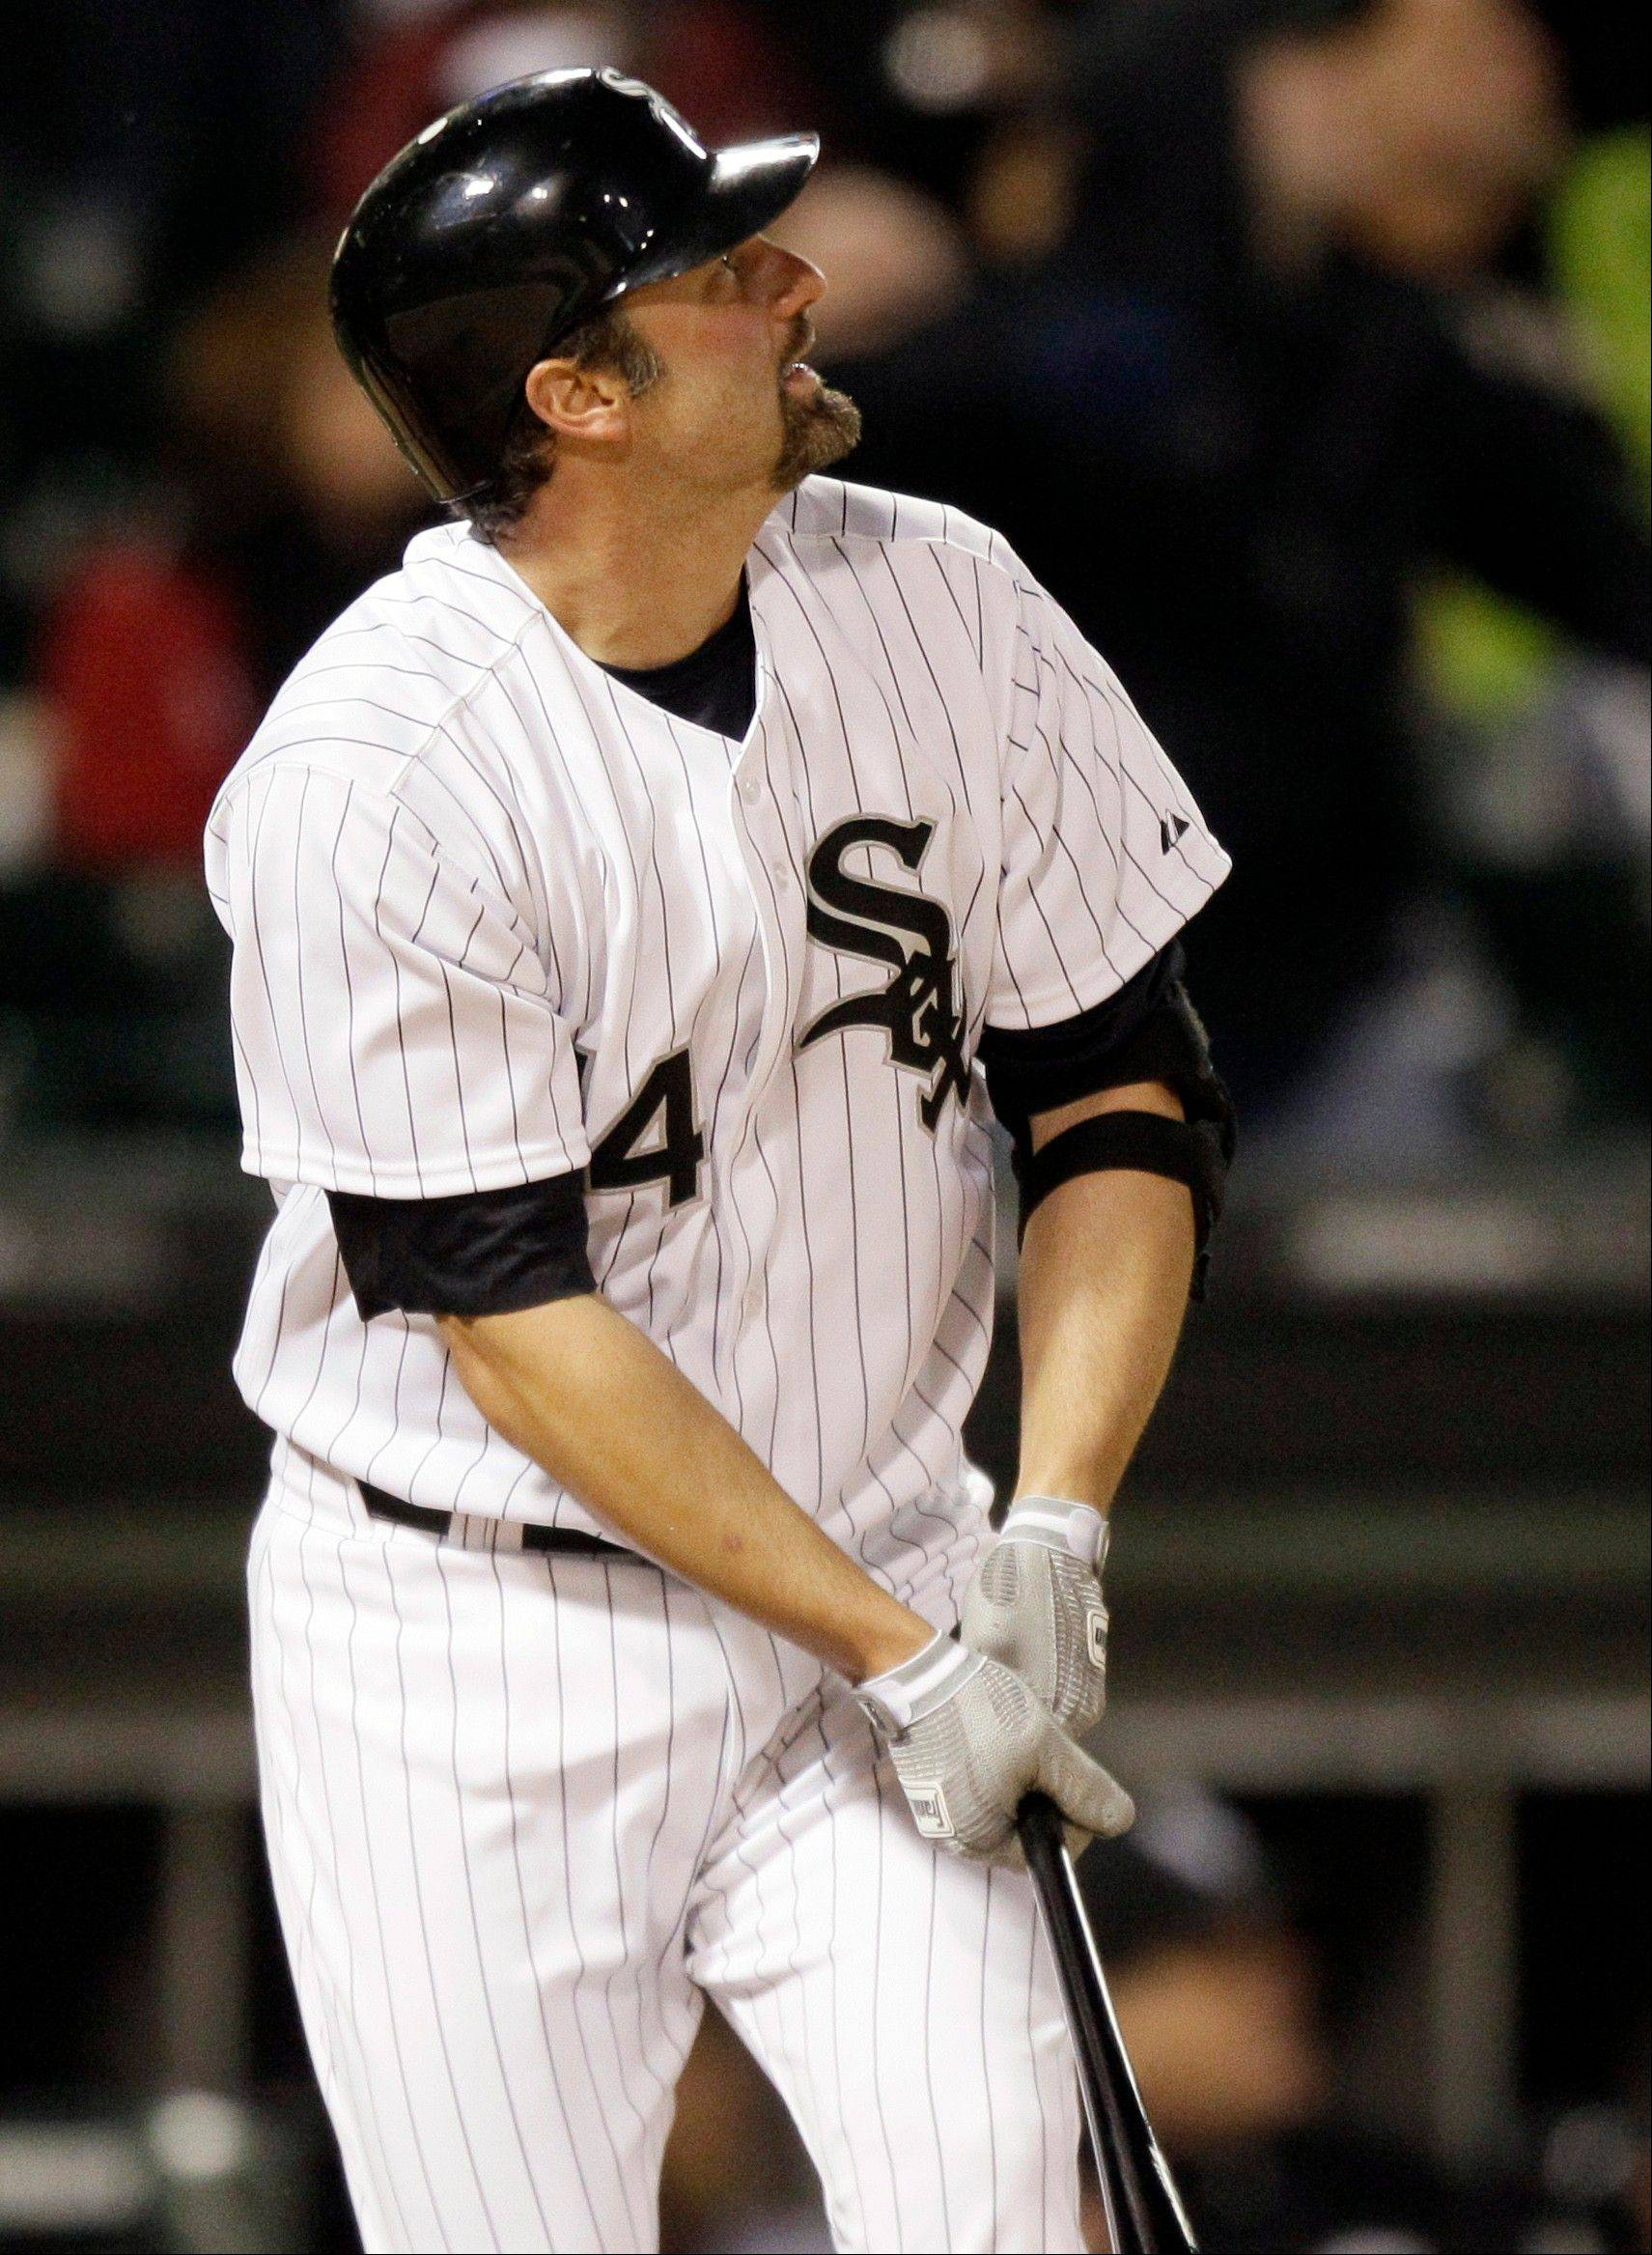 Paul Konerko watches his solo home run against the Boston Red Sox during the fifth inning of a baseball game in Chicago, Friday, April 27, 2012.